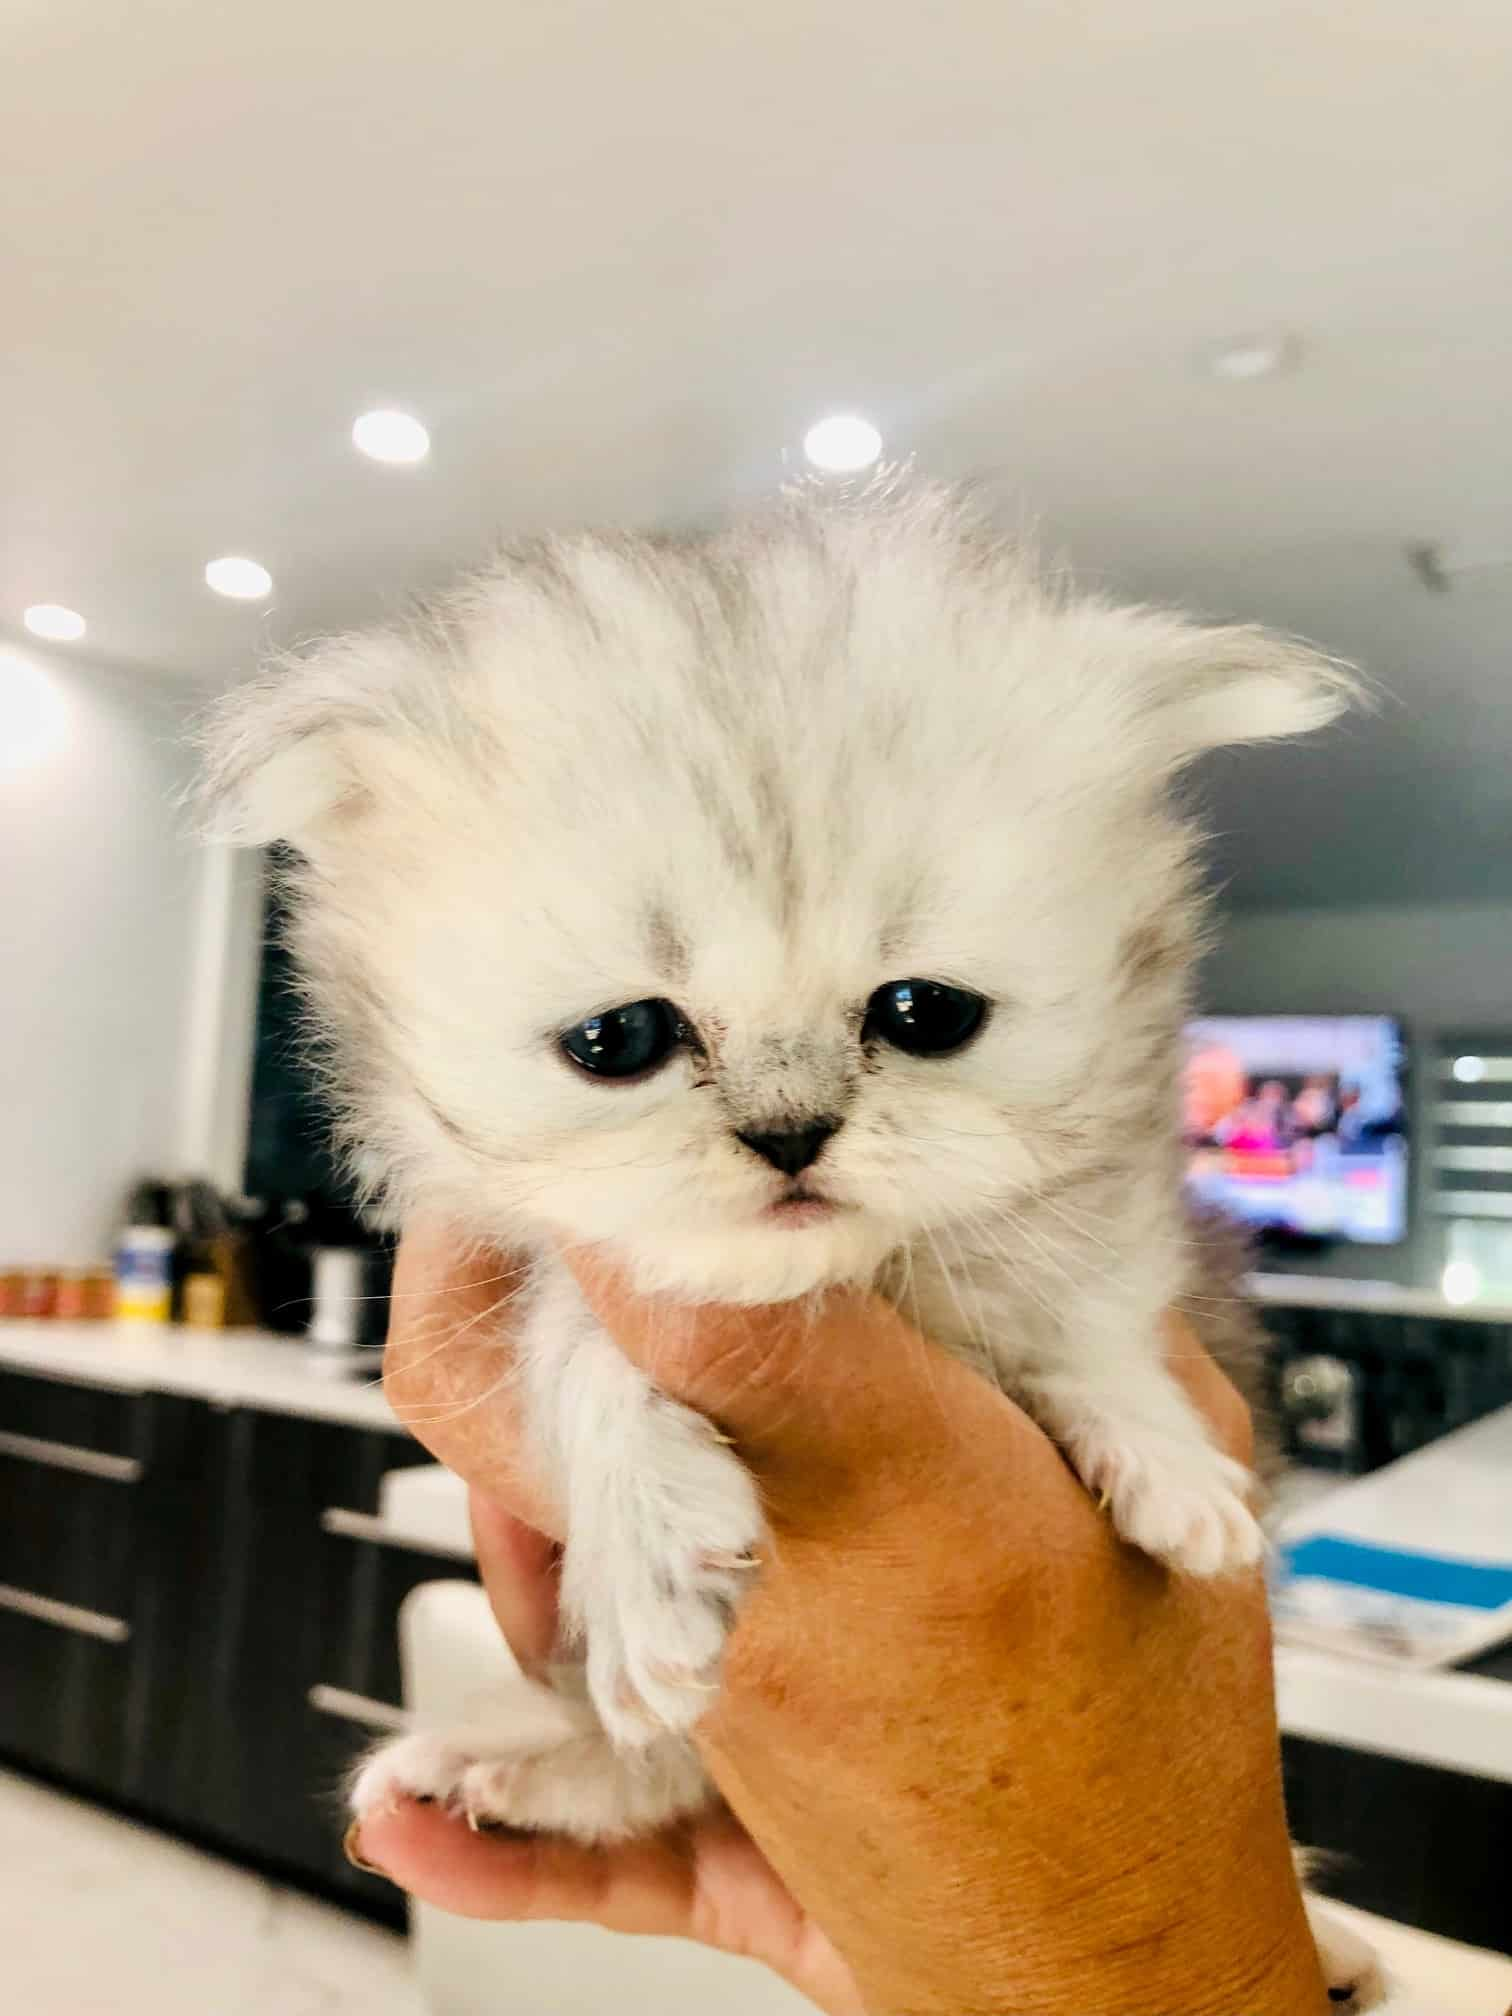 3 purebred Persian kittens from CFA parents